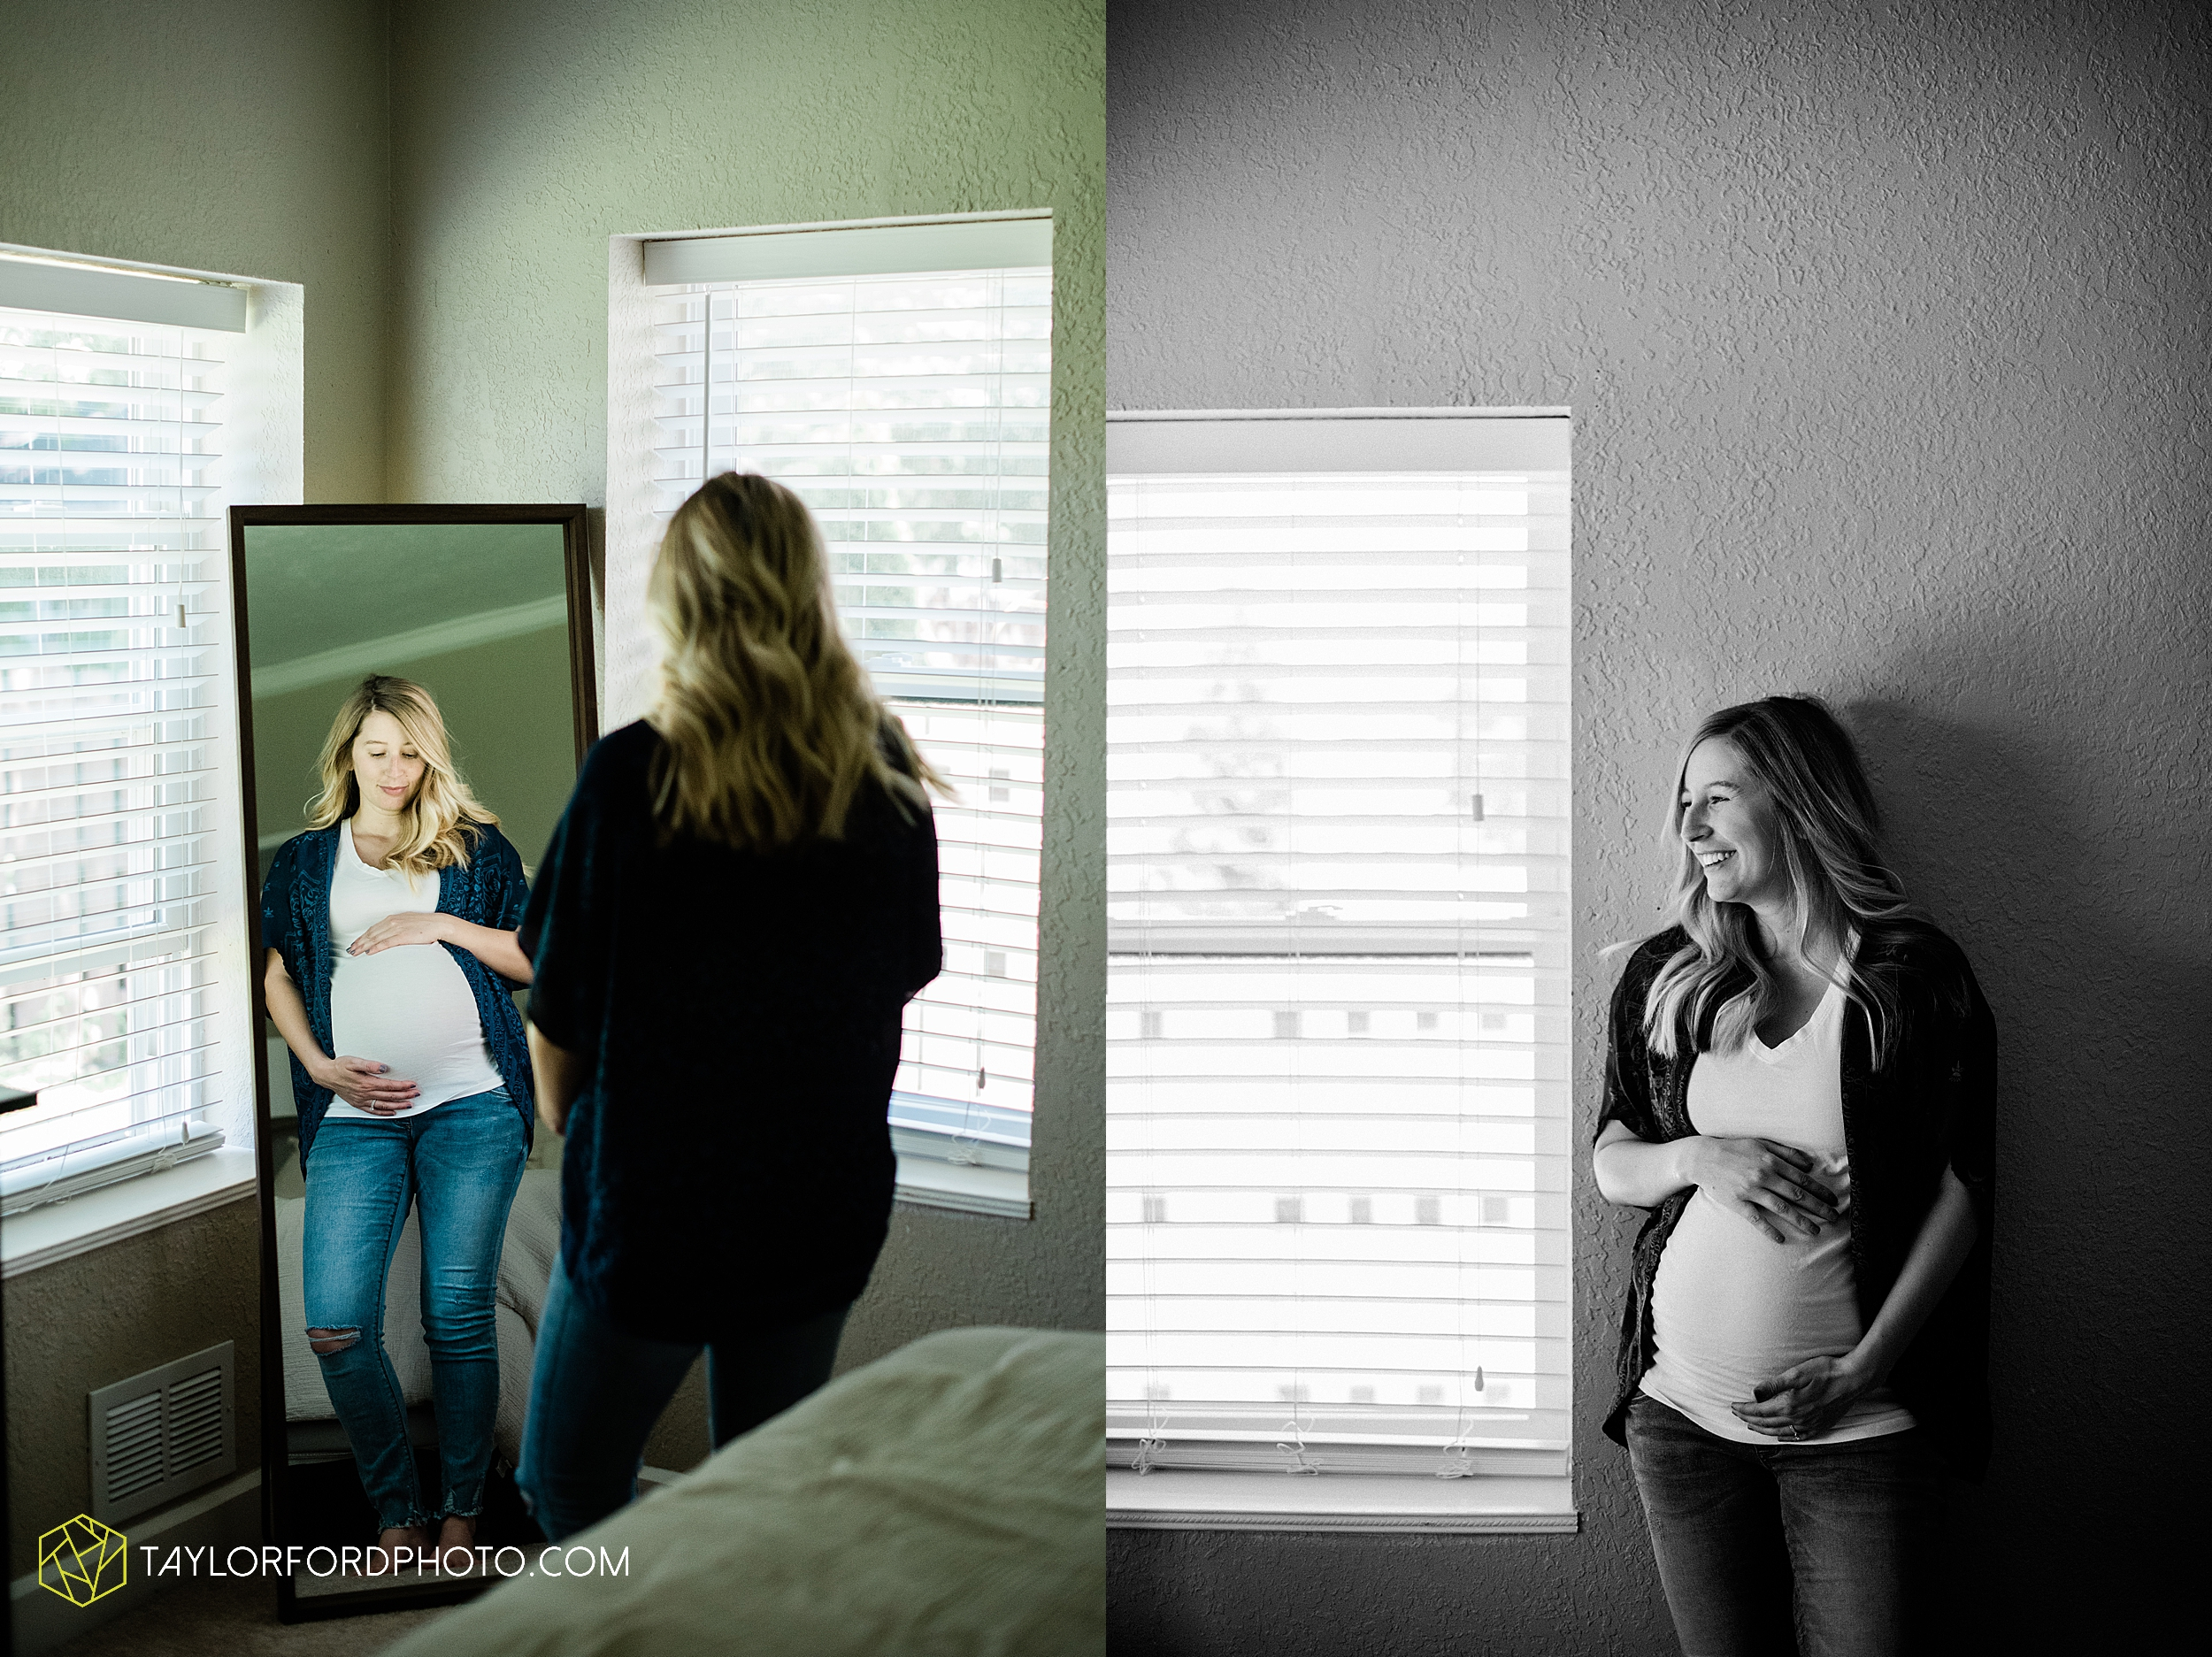 maumee-toledo-ohio-downtown-at-home-maternity-newborn-photographer-photography-taylor-ford-hirschy-photographer_3008.jpg